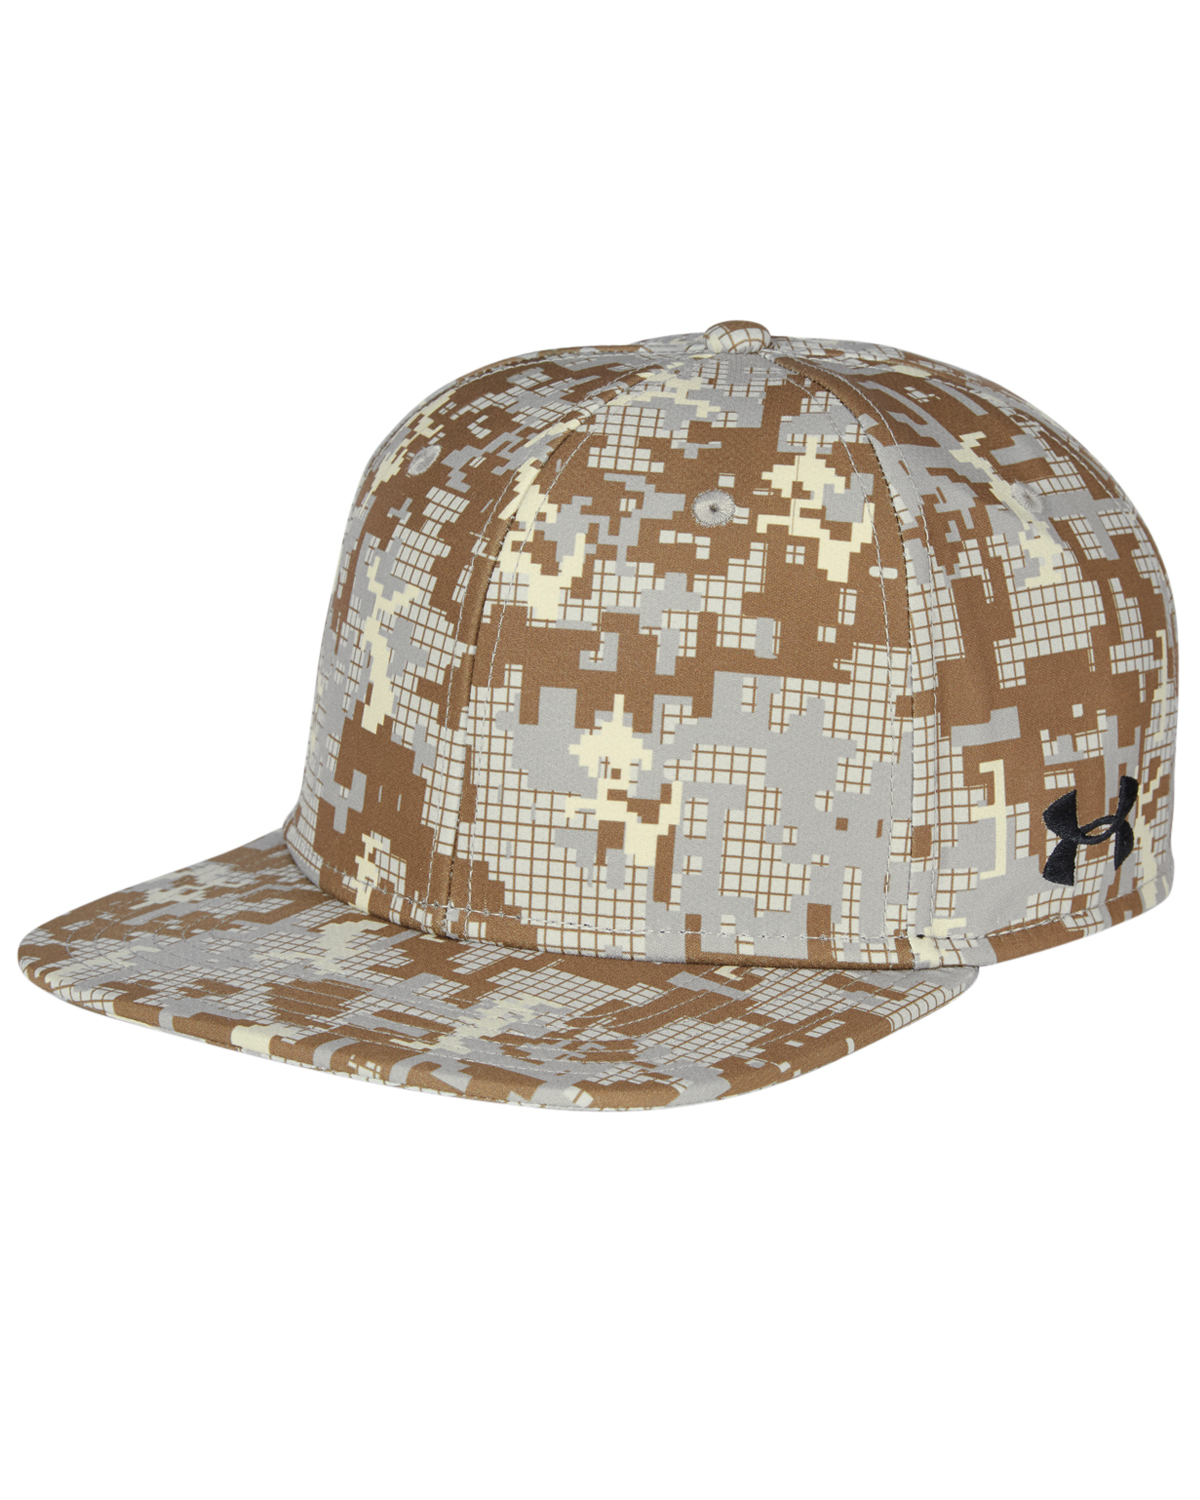 Under Armour 1285141 - Flat Bill Cap - Digi Camou